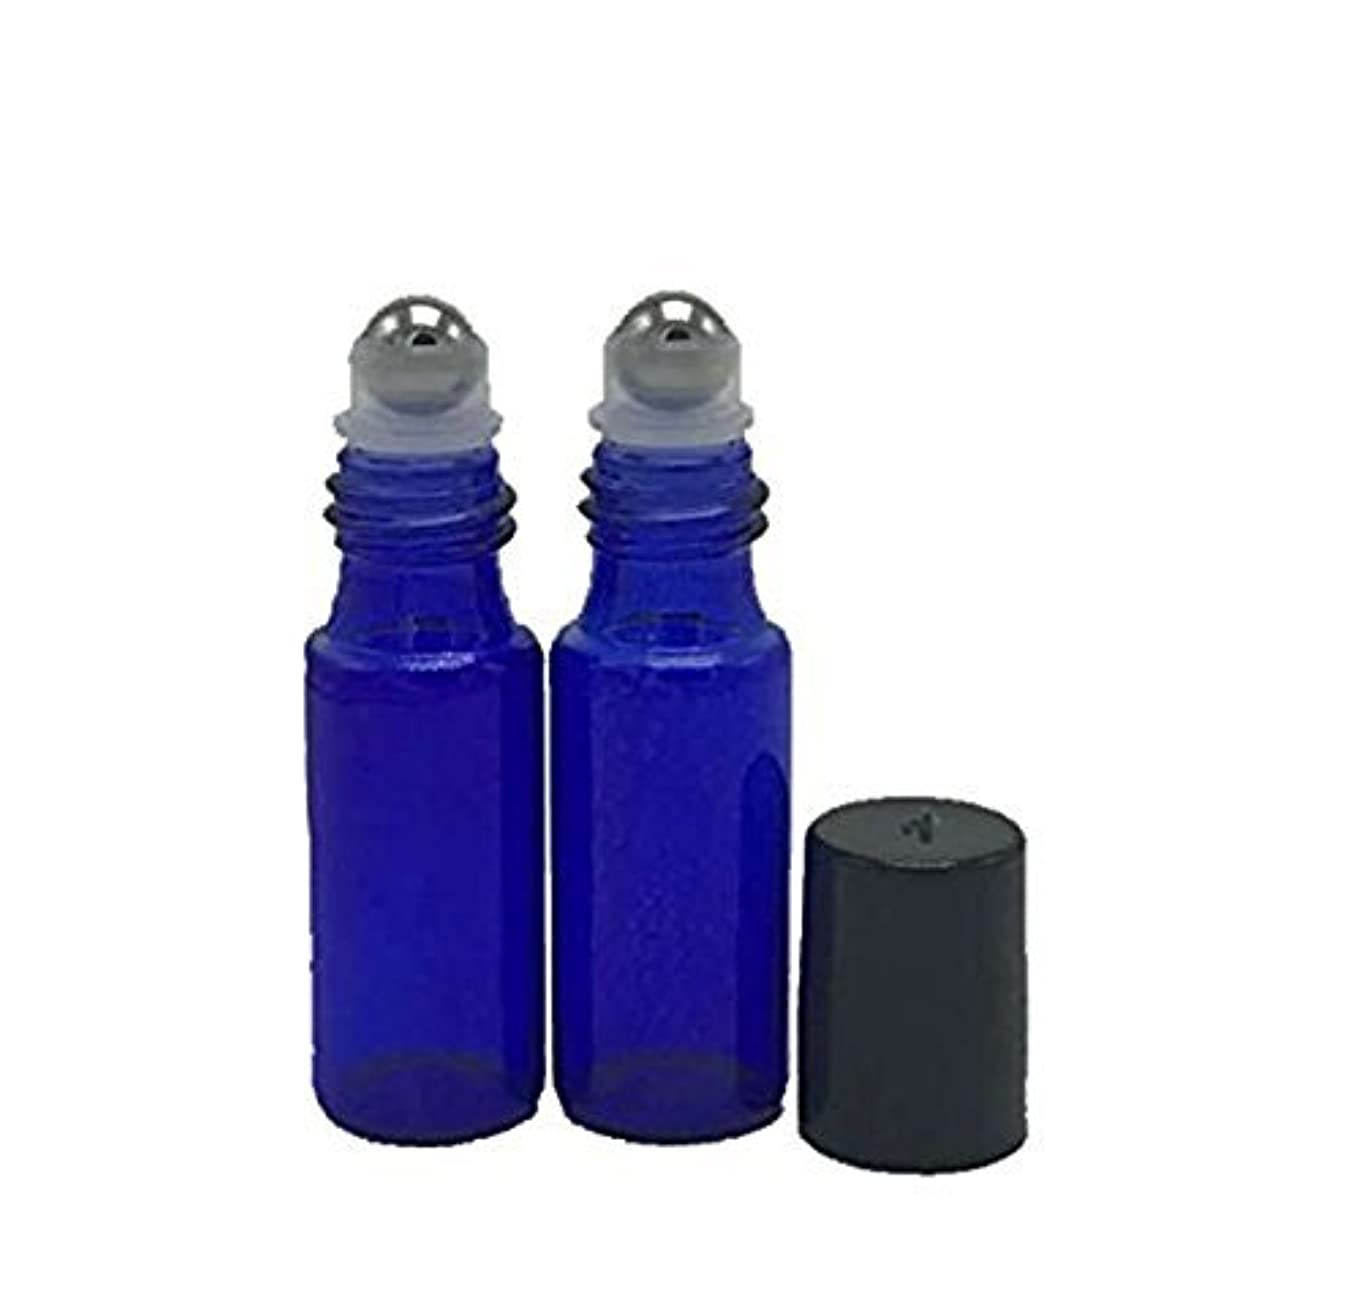 社会主義マラソンサンドイッチHaifly 12 Pcs 5 ml Empty Refillable Rollerball Glass Bottles for Essential Oil with 3 ml Dropper Blue [並行輸入品]